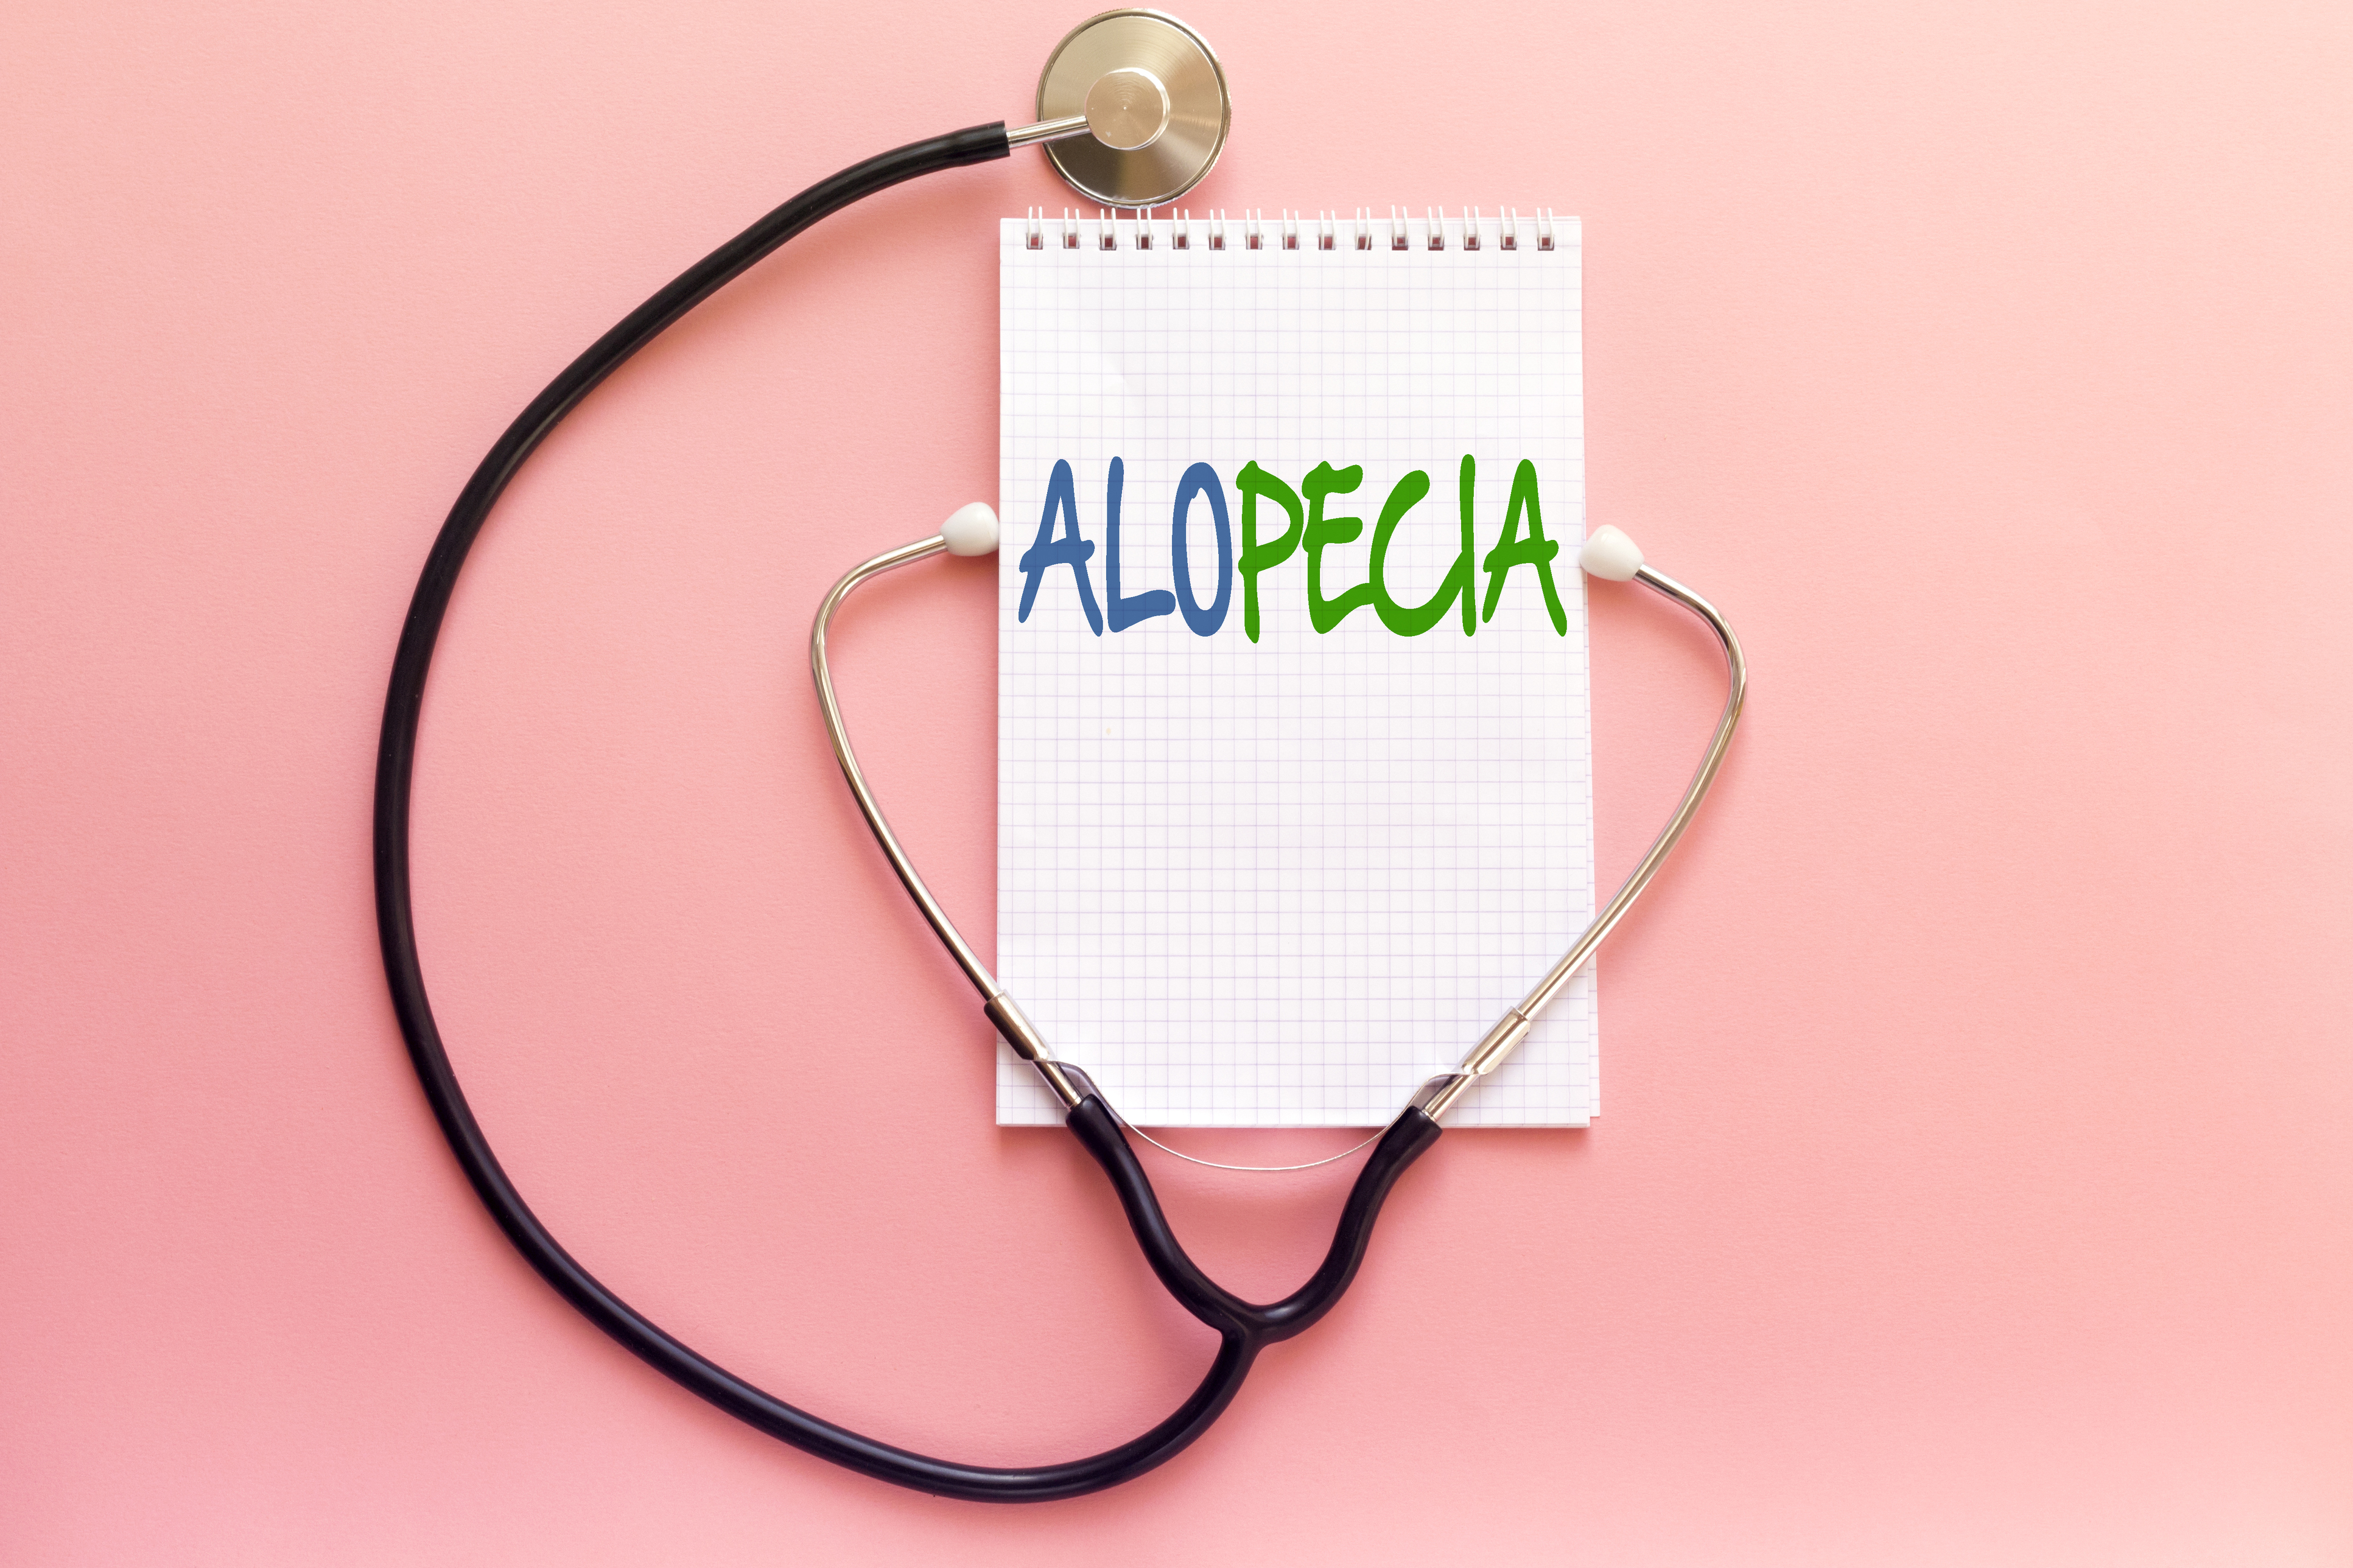 Image representing Alopecia in Clinical setting